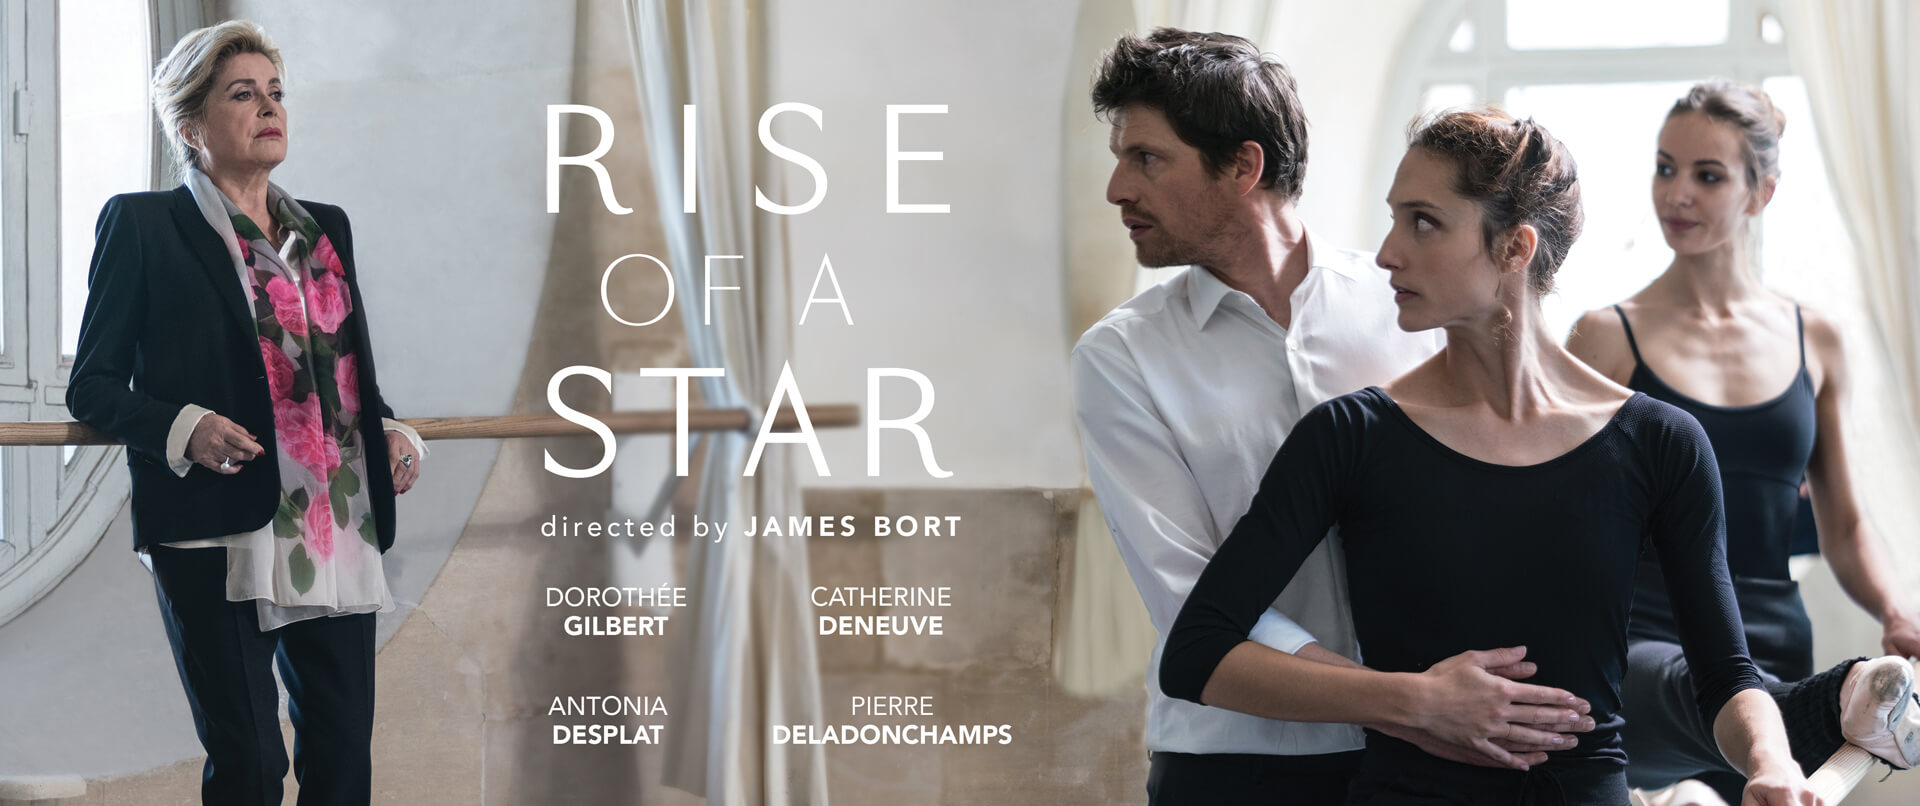 Rise of a Star - Interview with Director James Bort